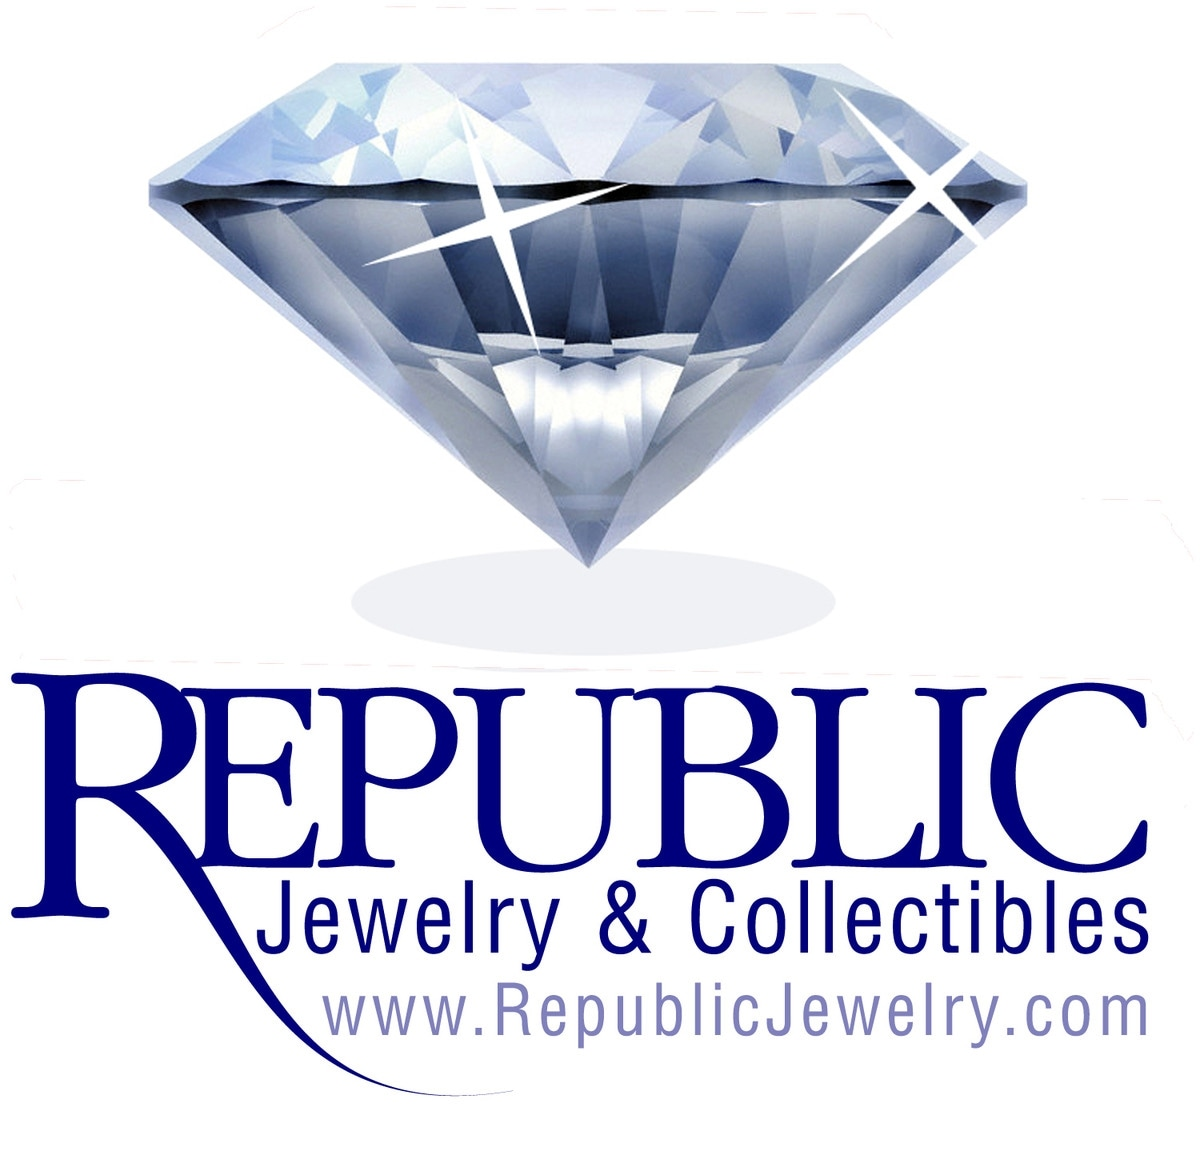 Republic Jewelry & Collectibles promo codes